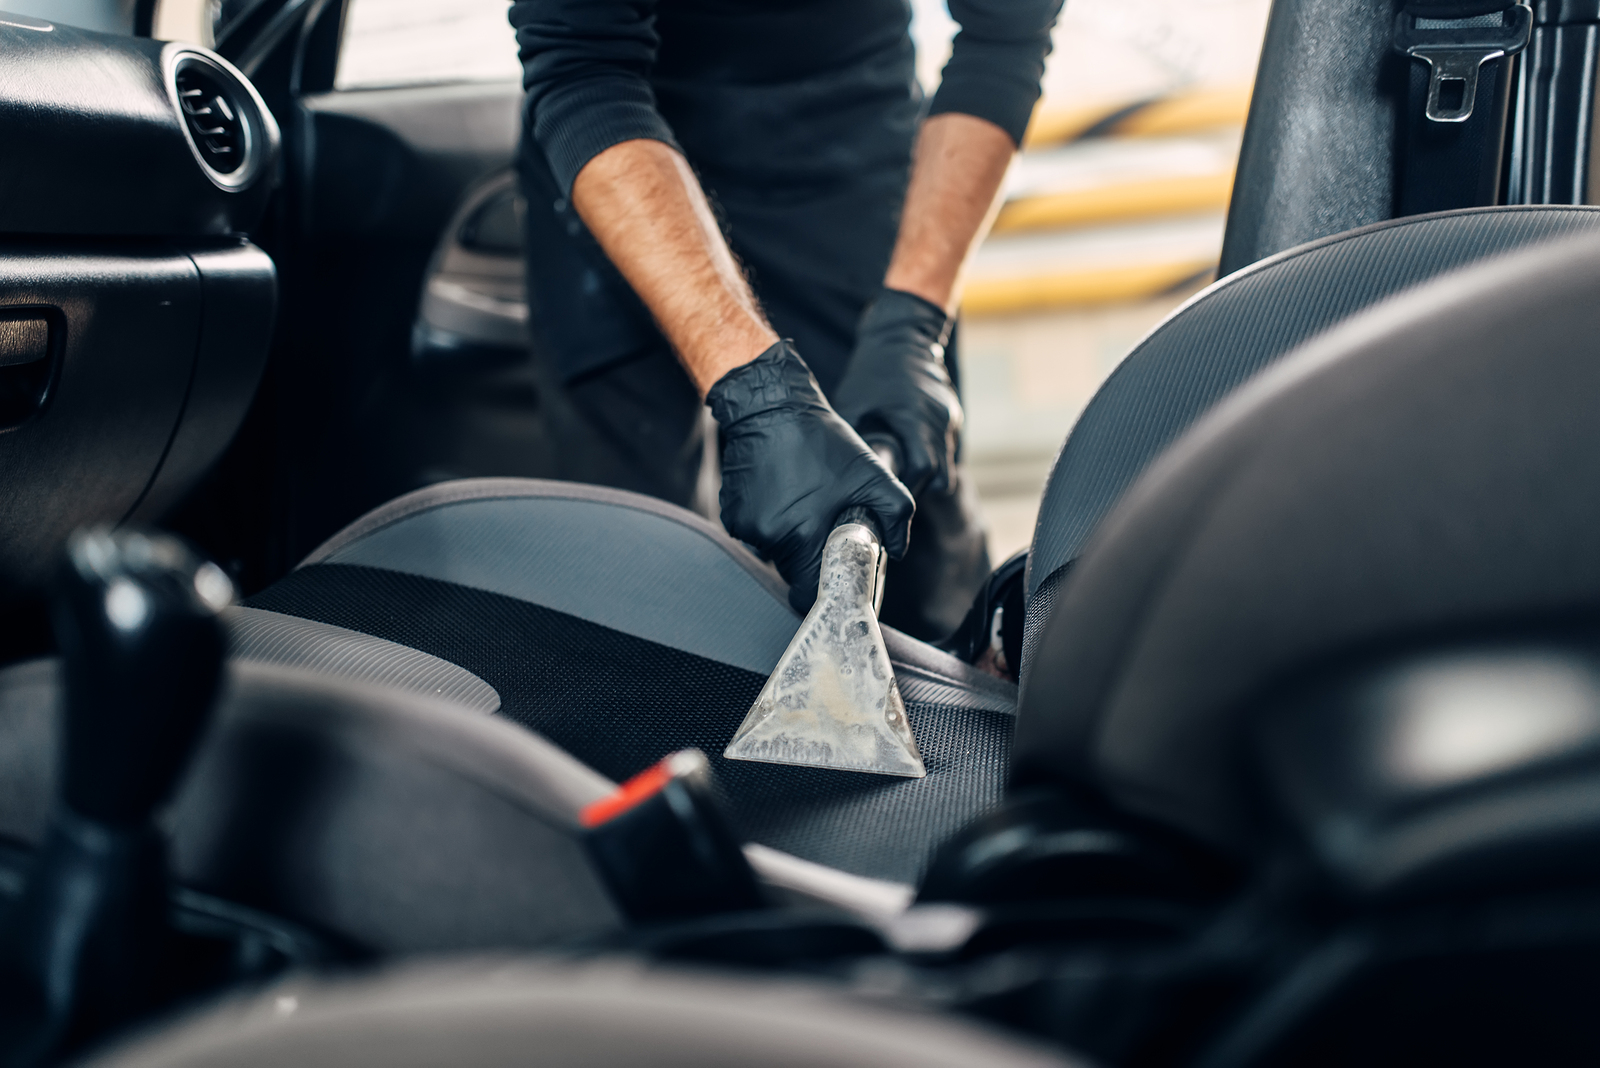 Car Interior Cleaning Services >> Car Cleaning & Detailing | Endicott & Binghamton, NY | Broome Steam Carpet Cleaning Inc.